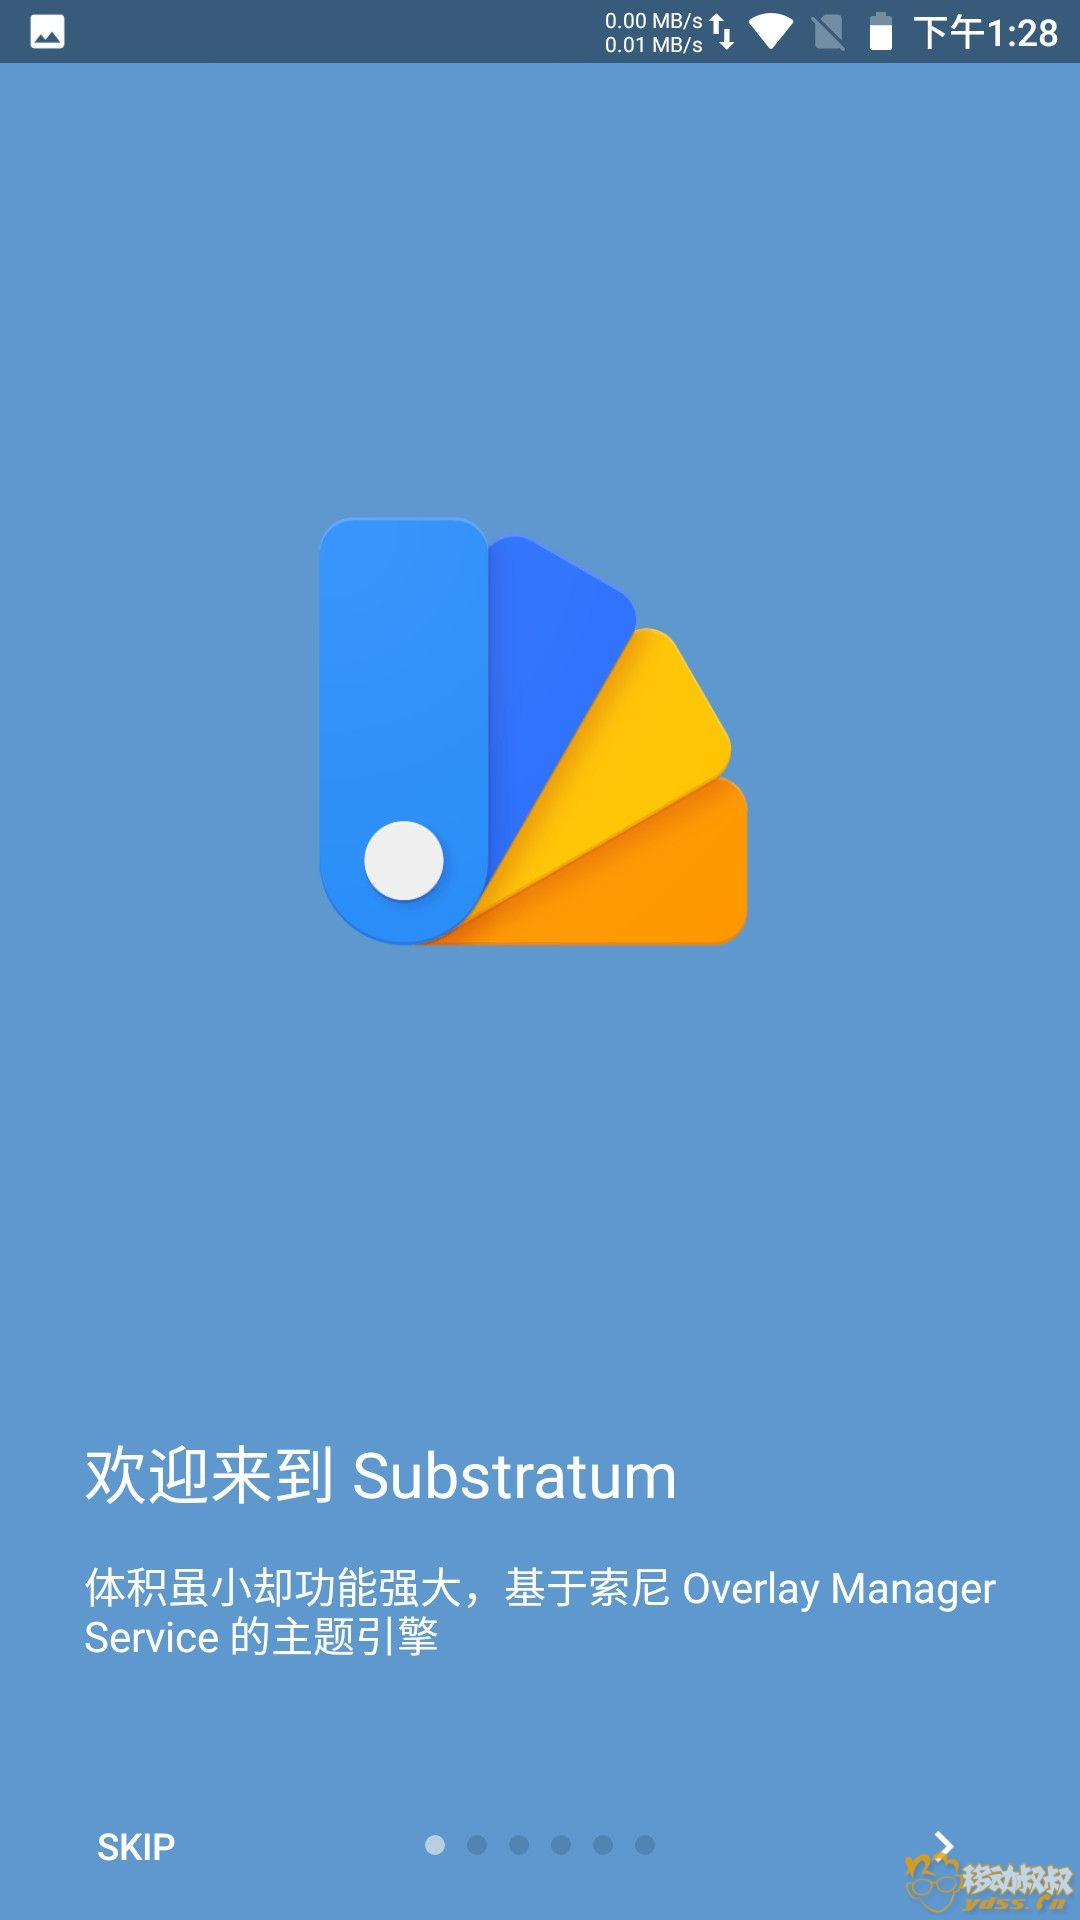 New0020Screenshot_substratum_20180913-132836.jpg